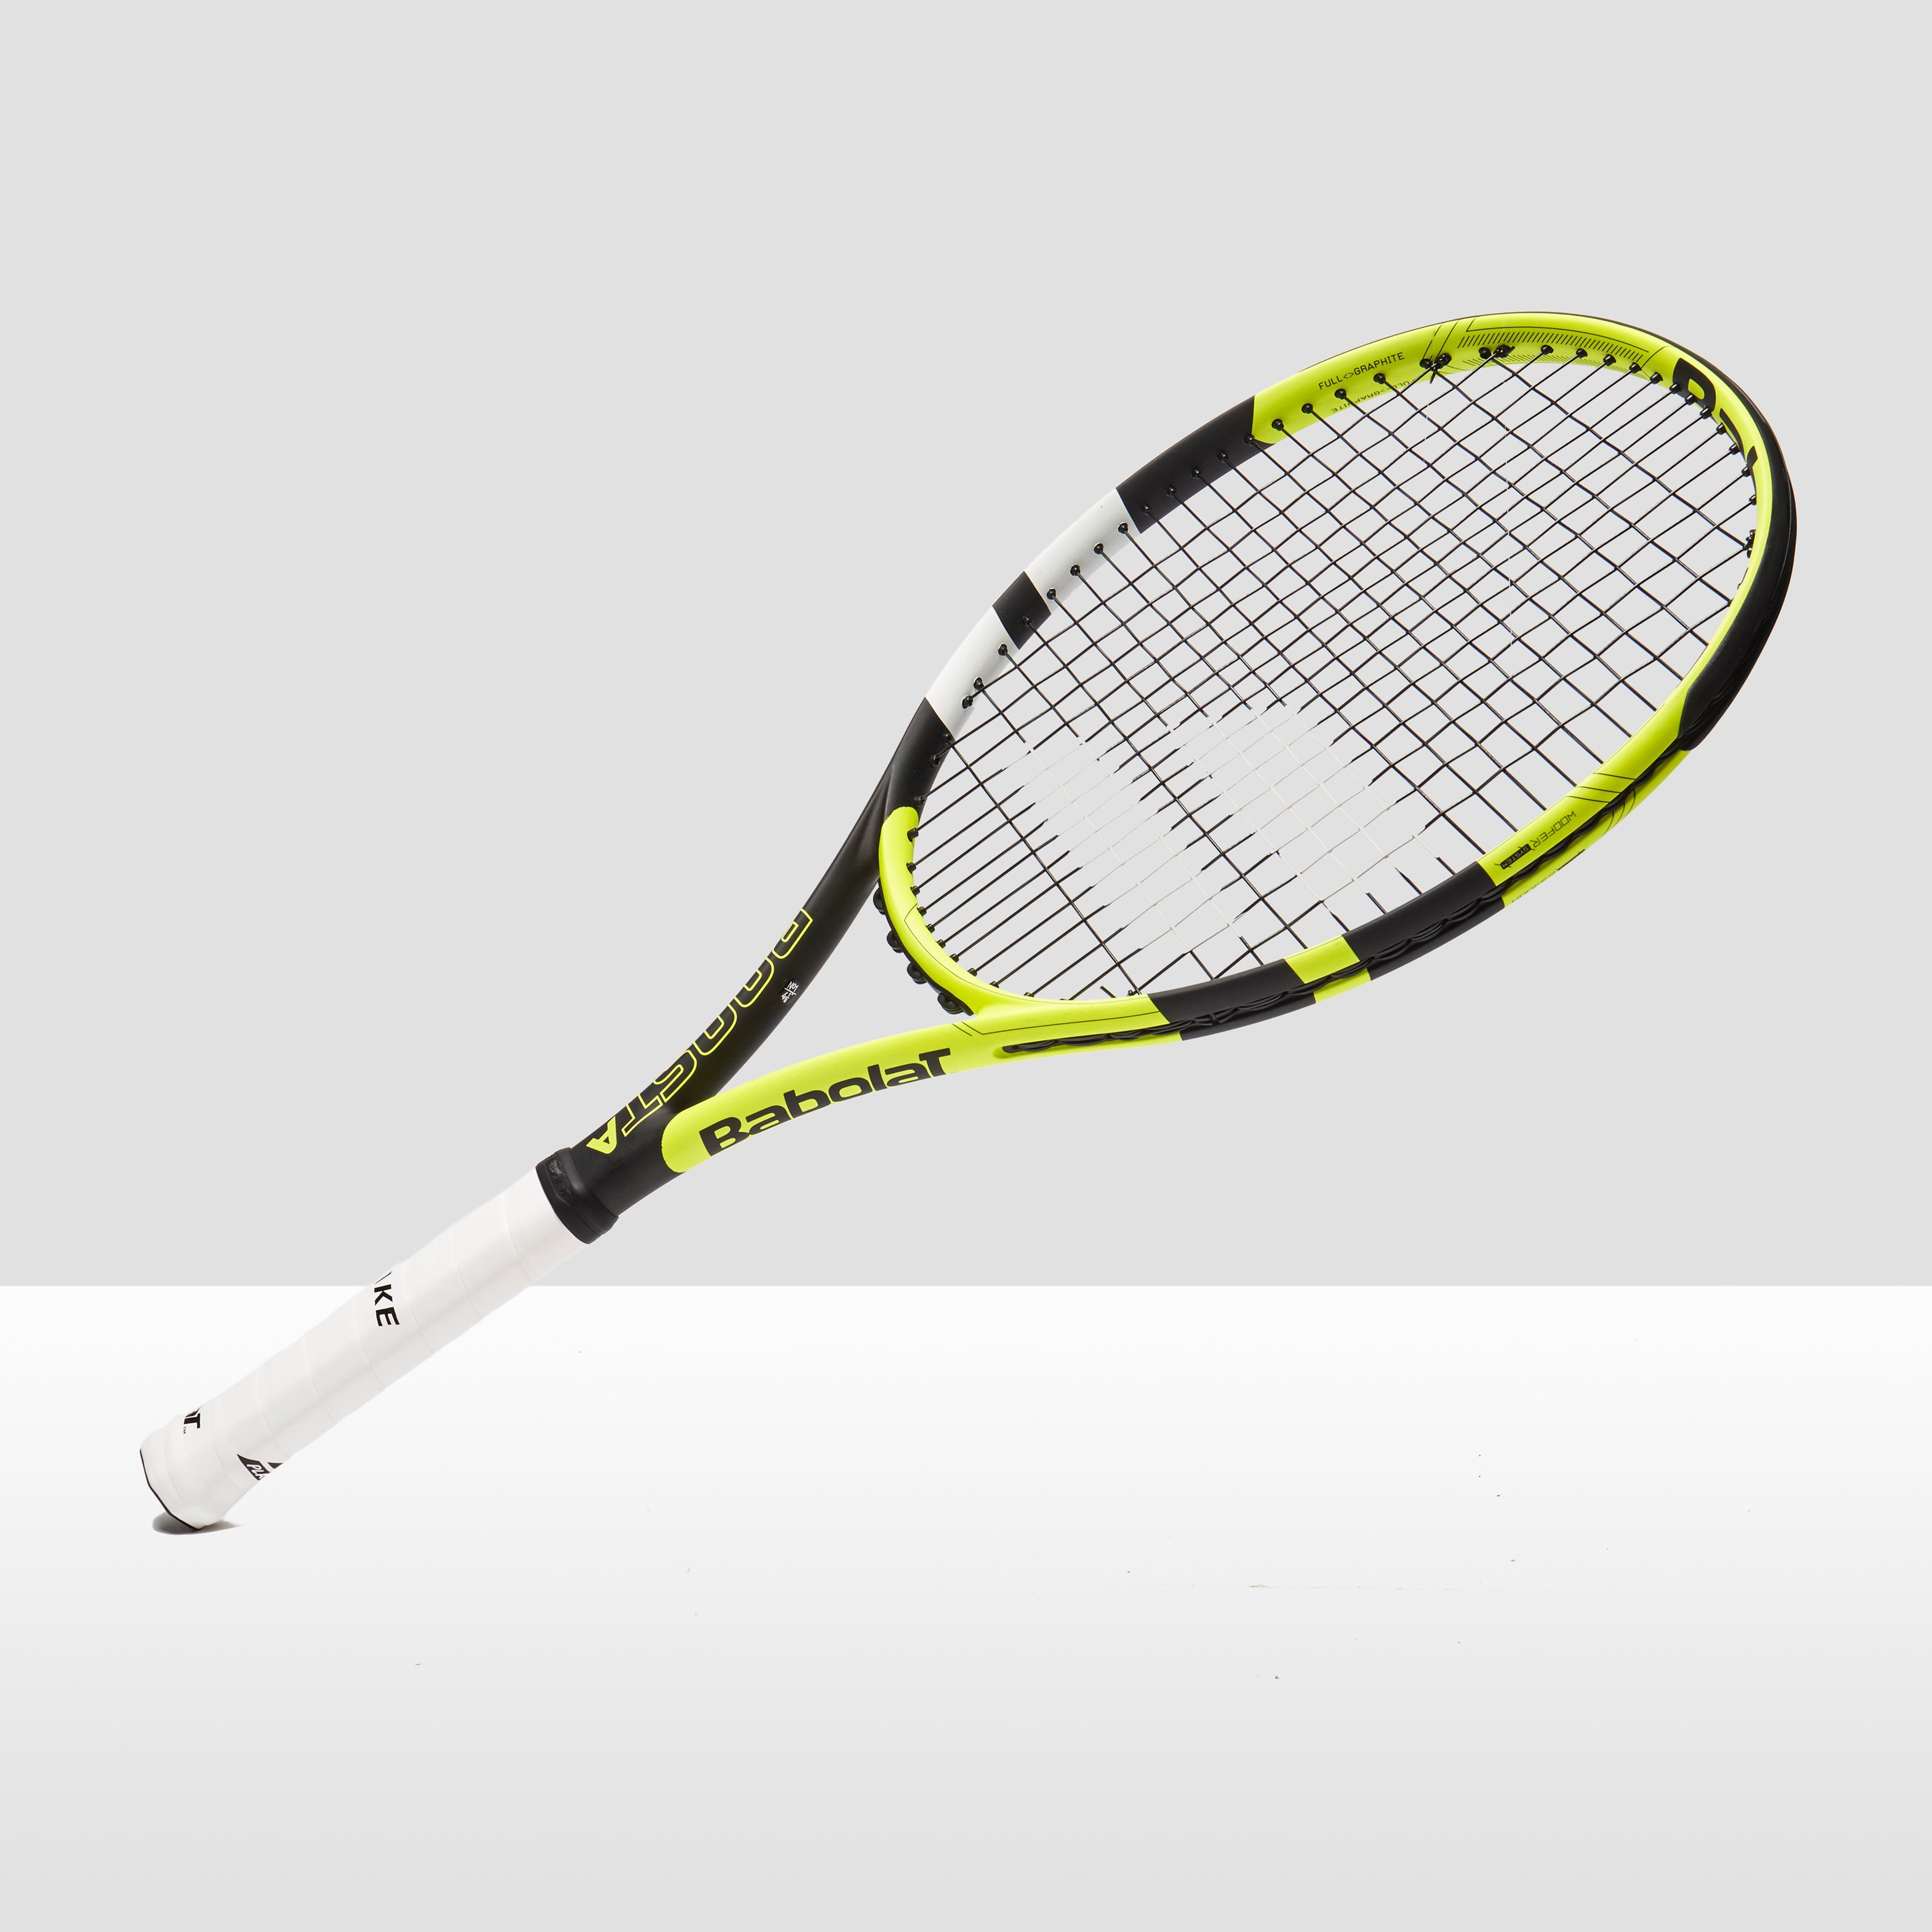 Babolat Boost Aero Tennis Racket